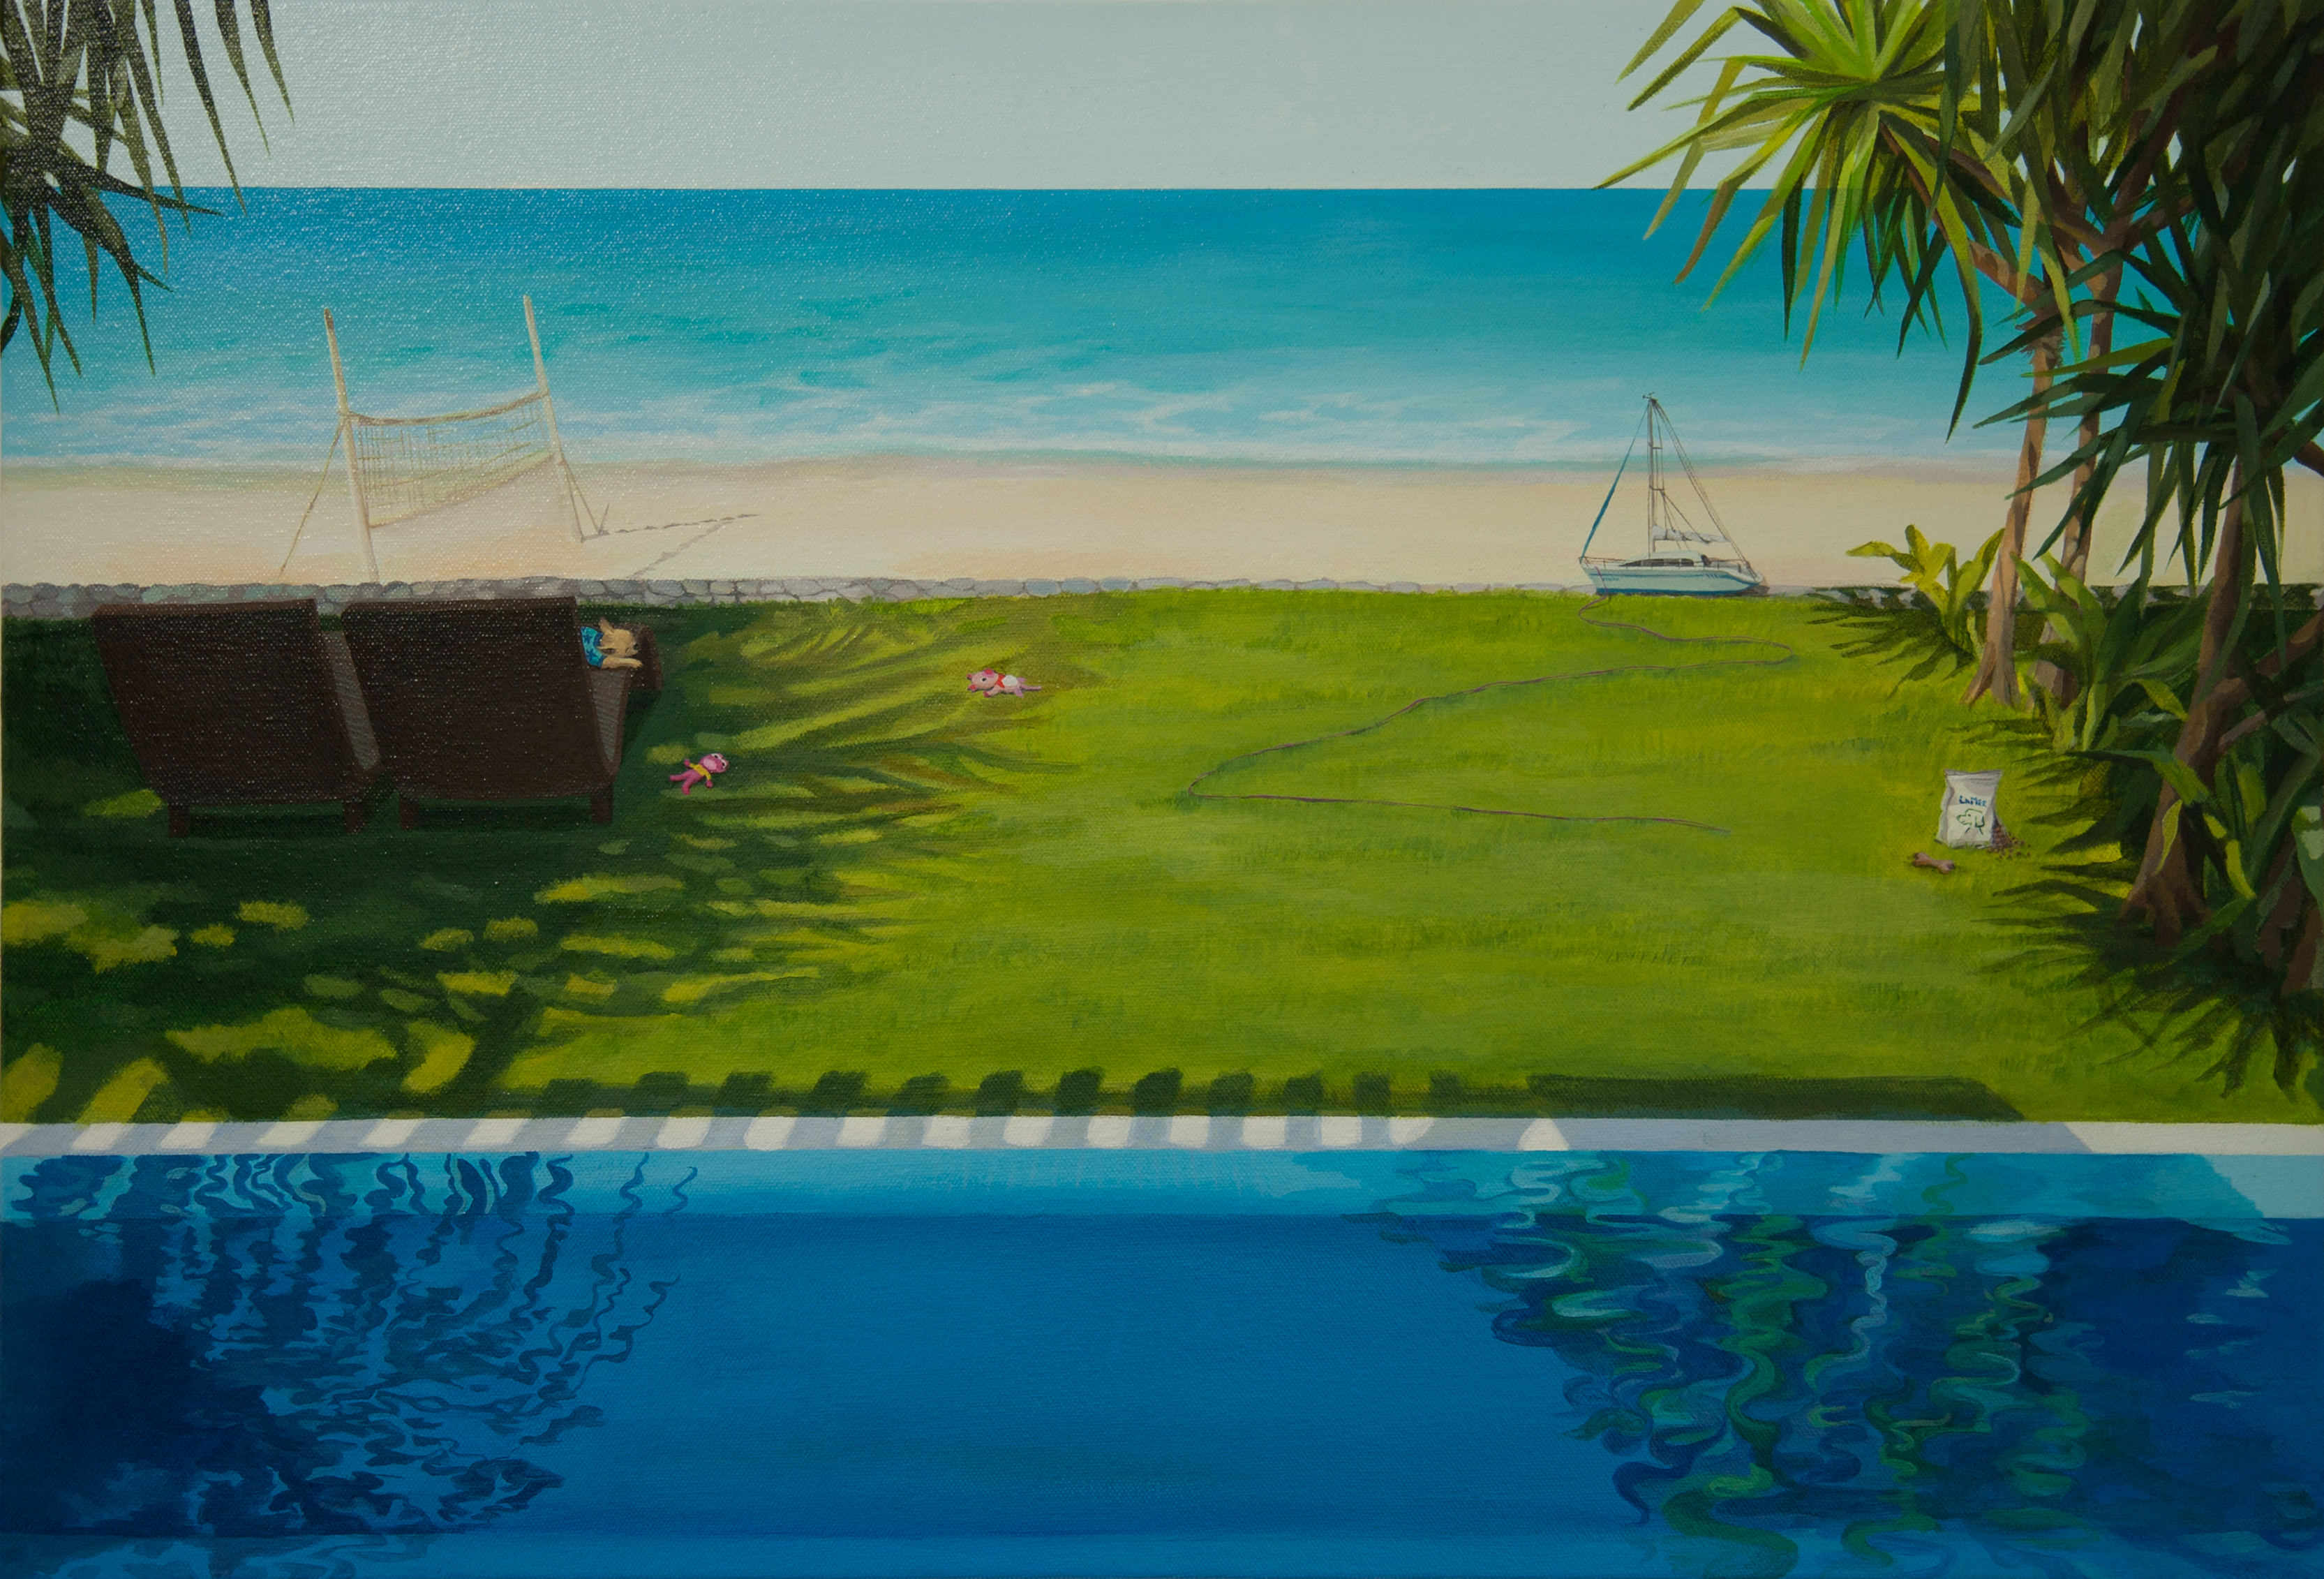 la mer,2010, acrylic on canvas,72.7x50.0cm